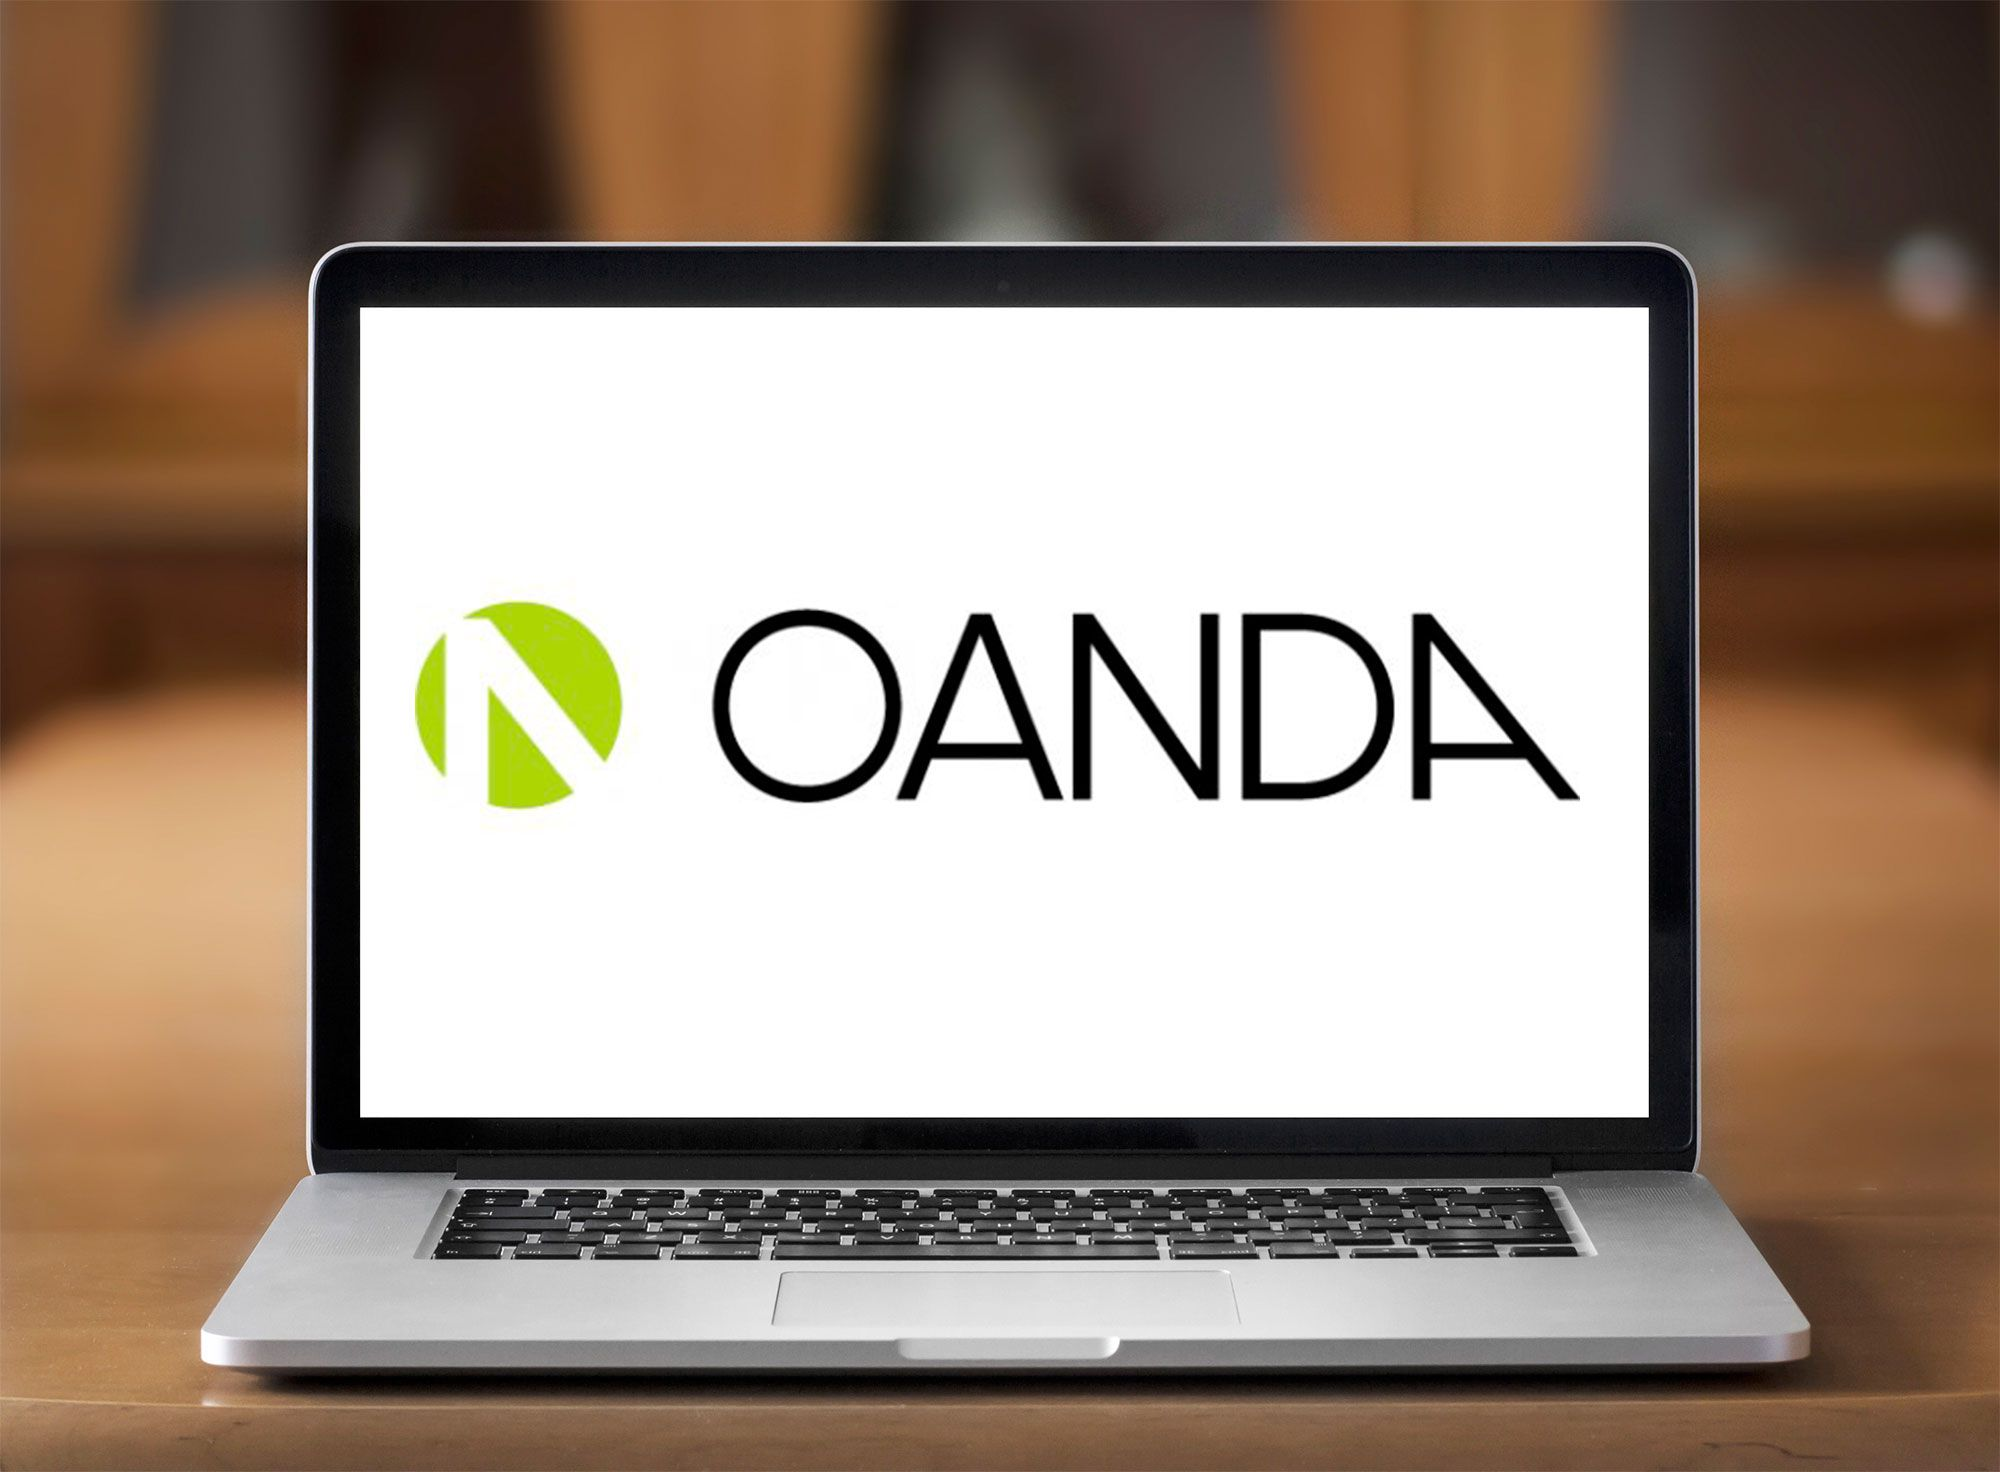 Oanda forex demo login